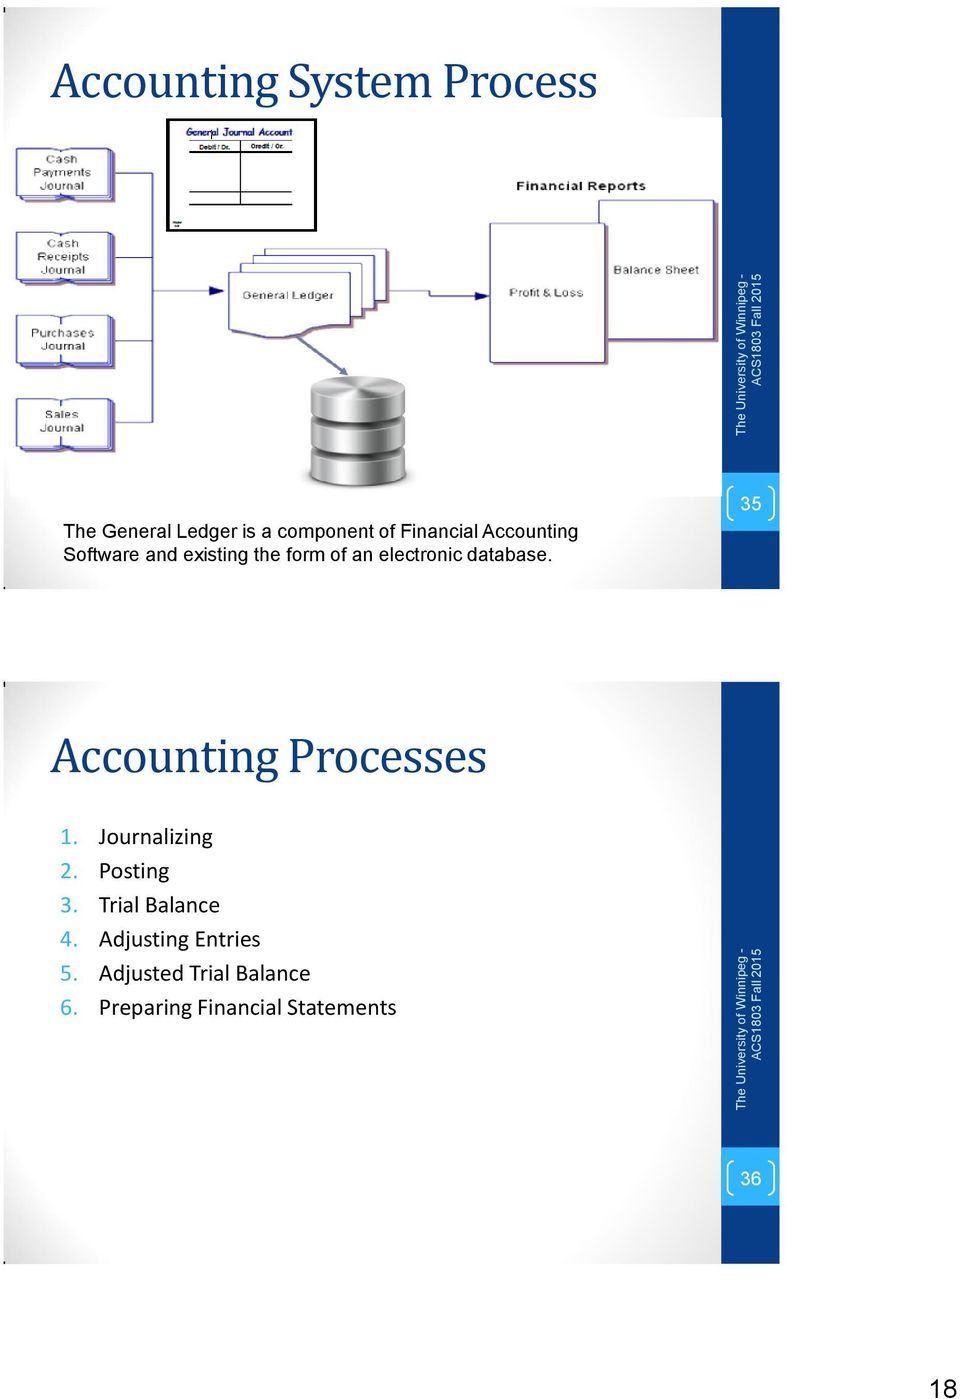 Acs 1803 Introduction To Information Systems Functional Area Process Flow Diagram General Ledger 35 Accounting Processes 1 Journalizing 2 Posting 3 Trial Balance 4